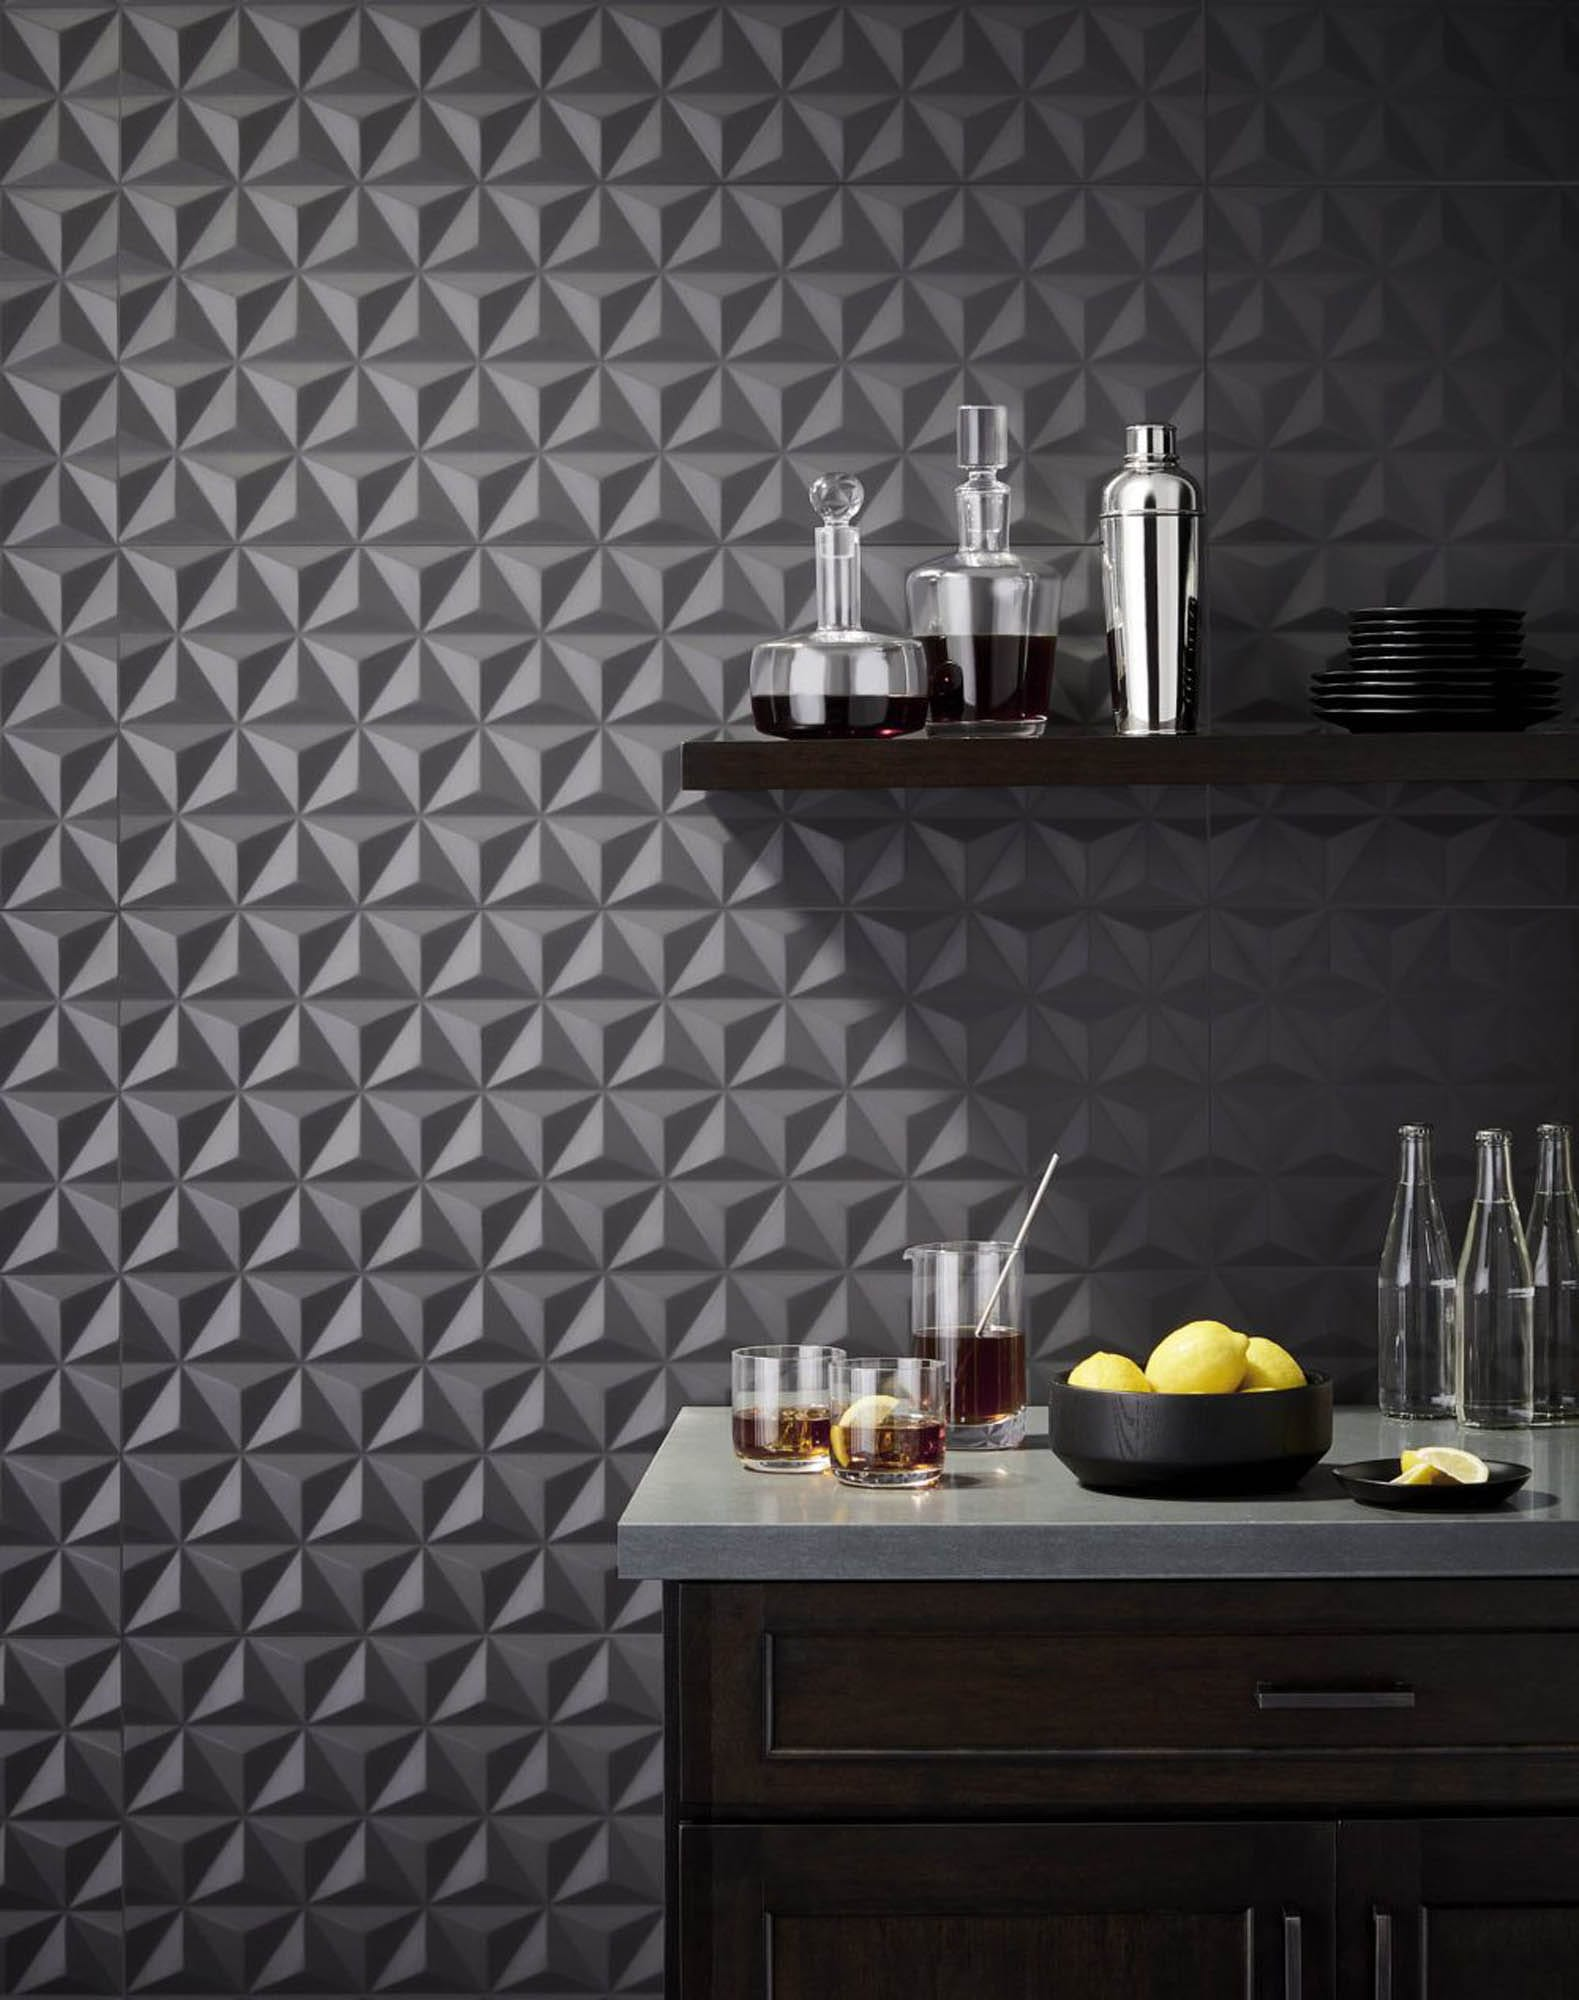 Black geometric bar wall tile